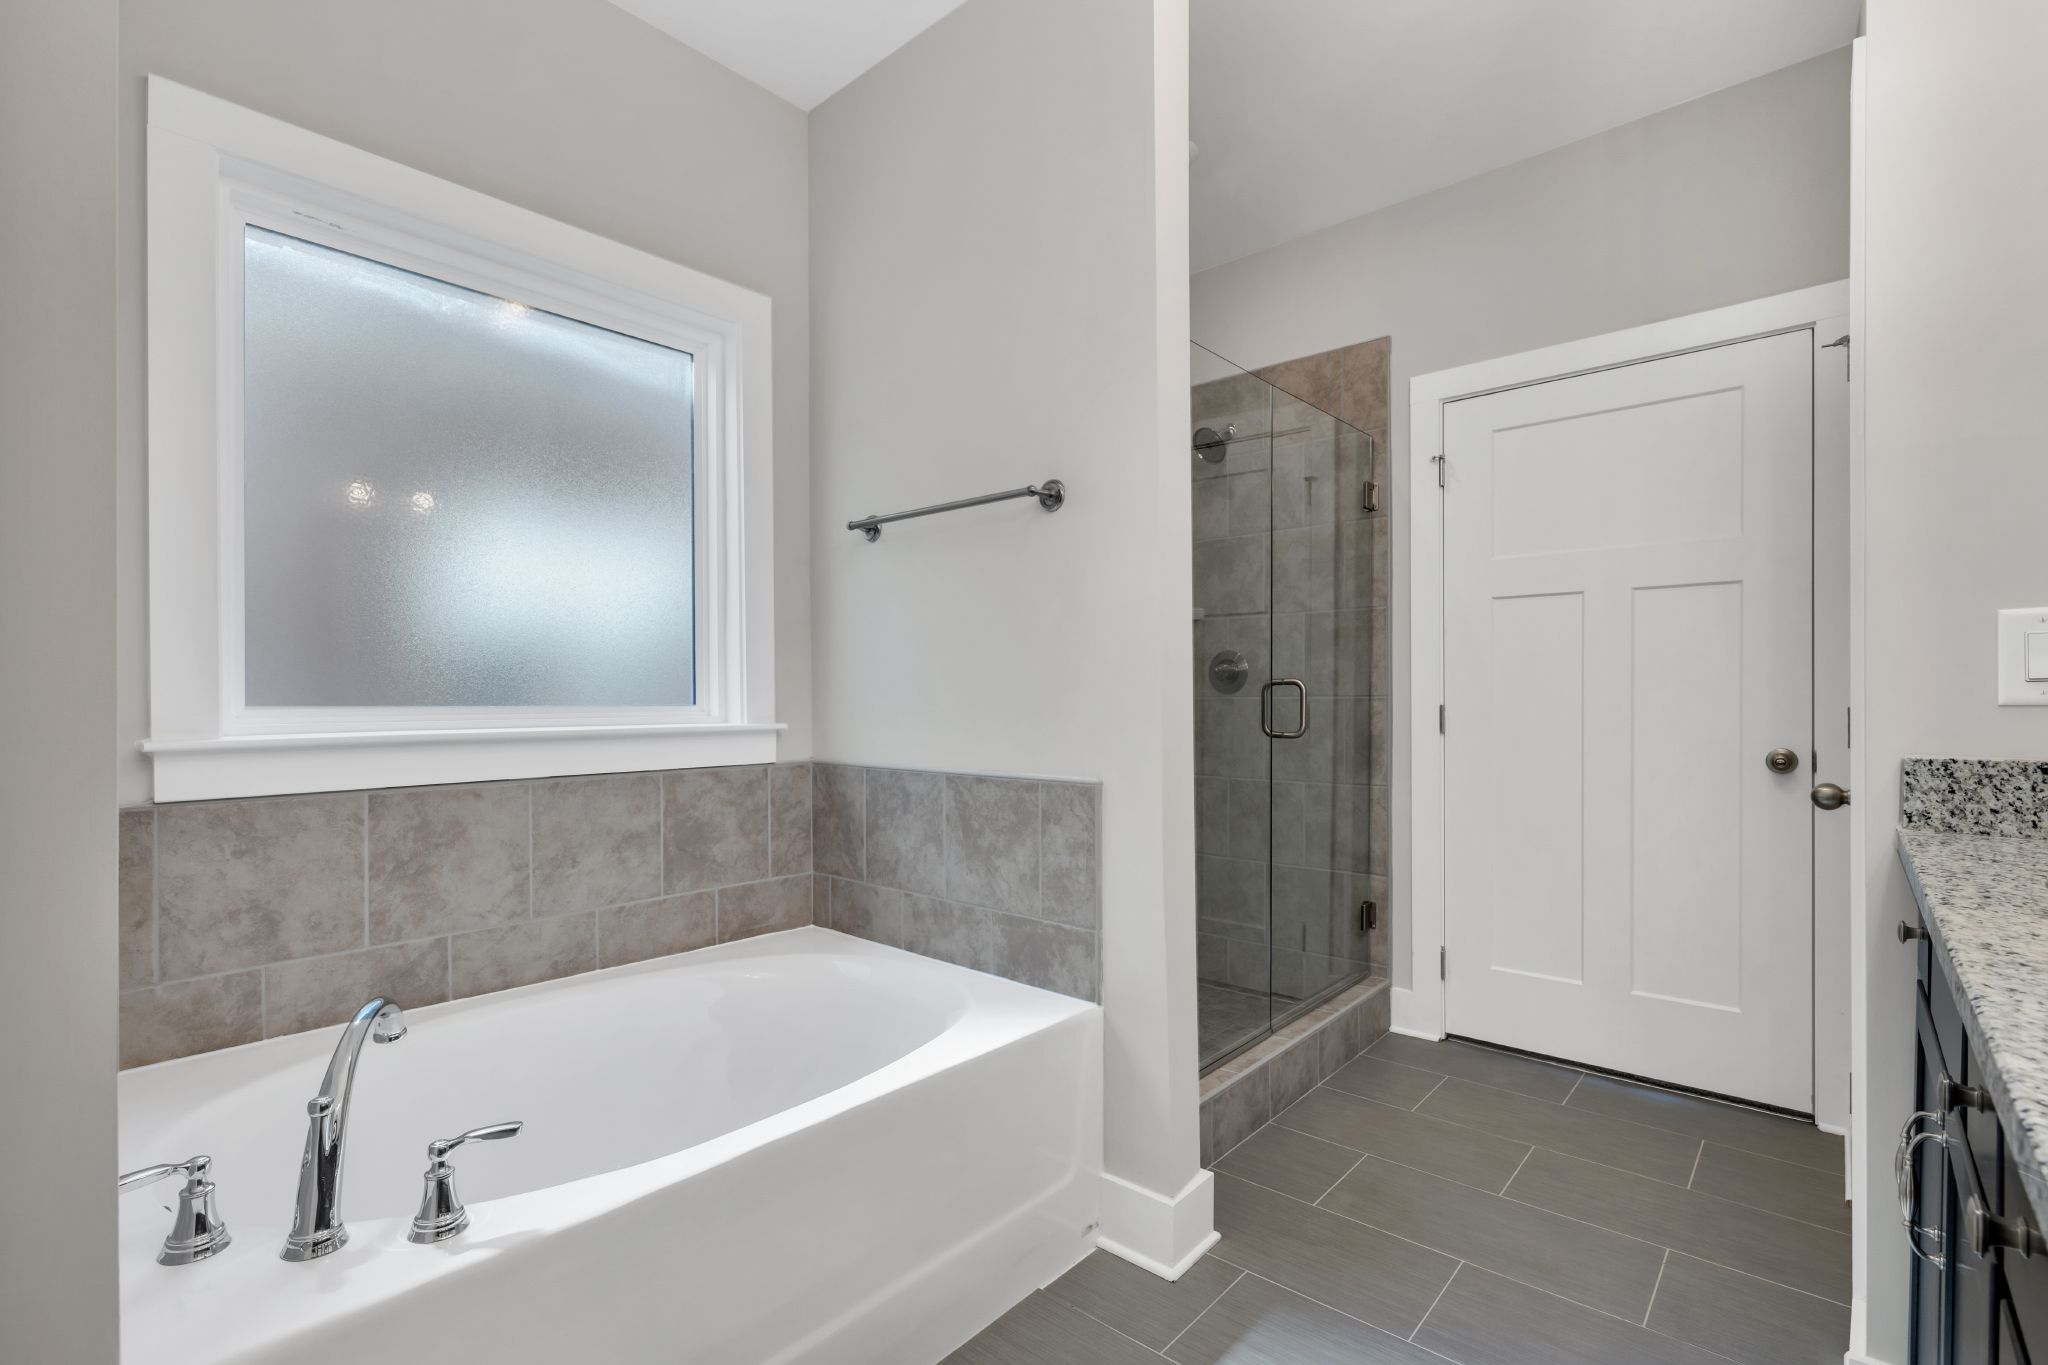 Bathroom featured in The Hanover By Goodall Homes in Knoxville, TN